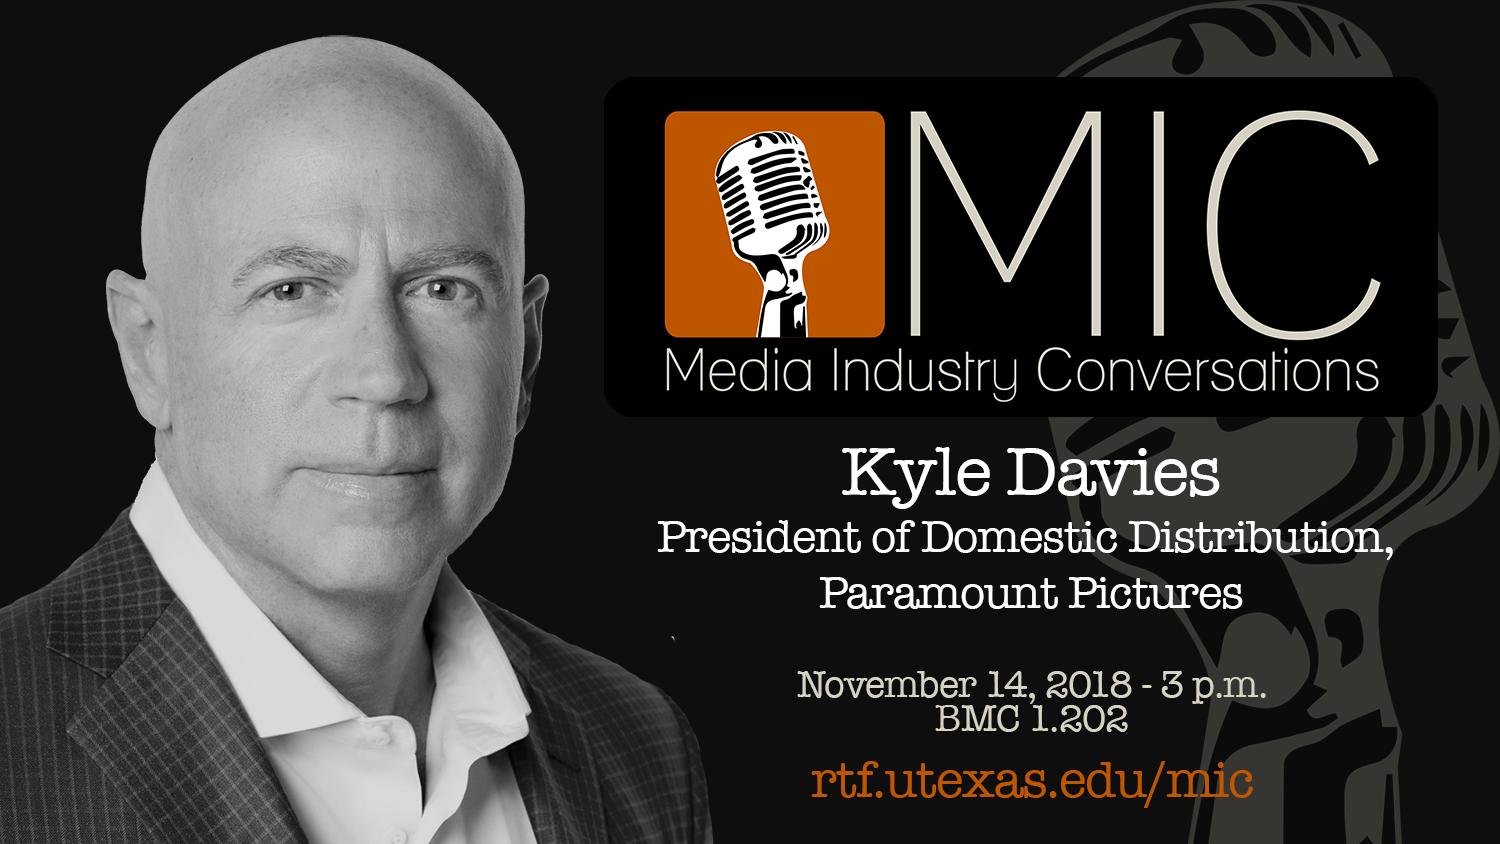 kyle_davies_MIC_talk_november_12_2018_3pm_BMC_1.202